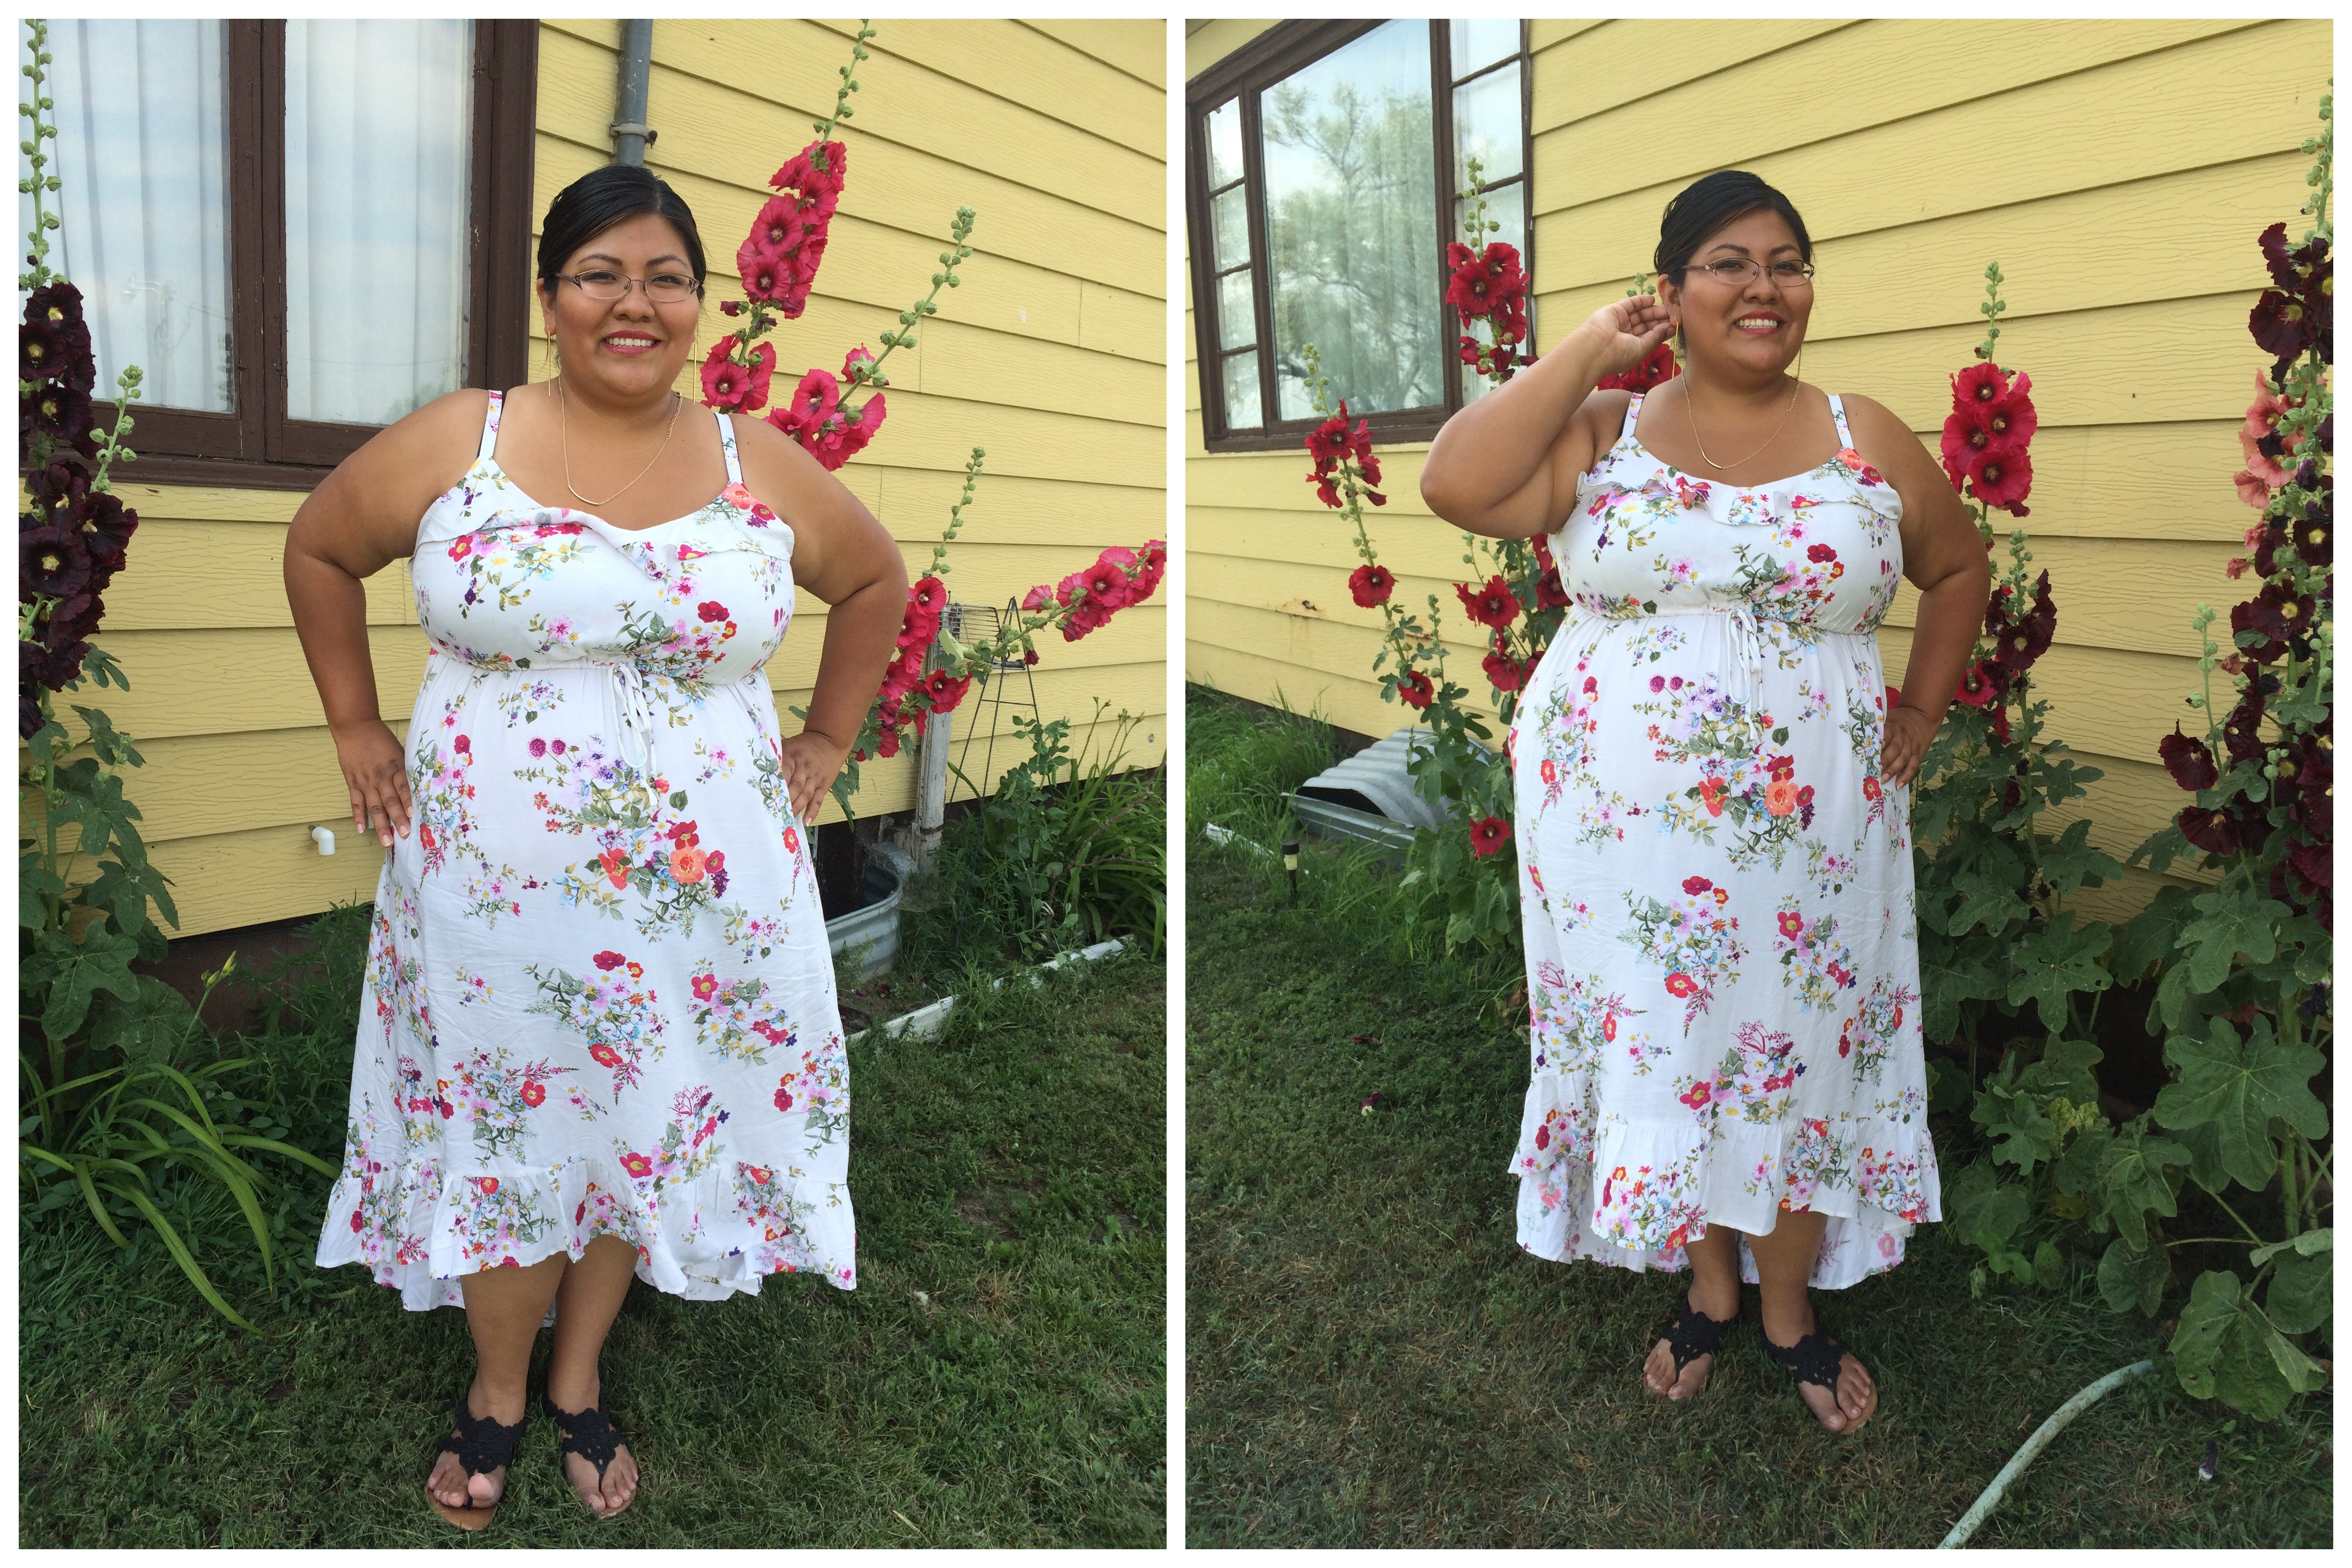 Torrid Summer Dress to Chill In